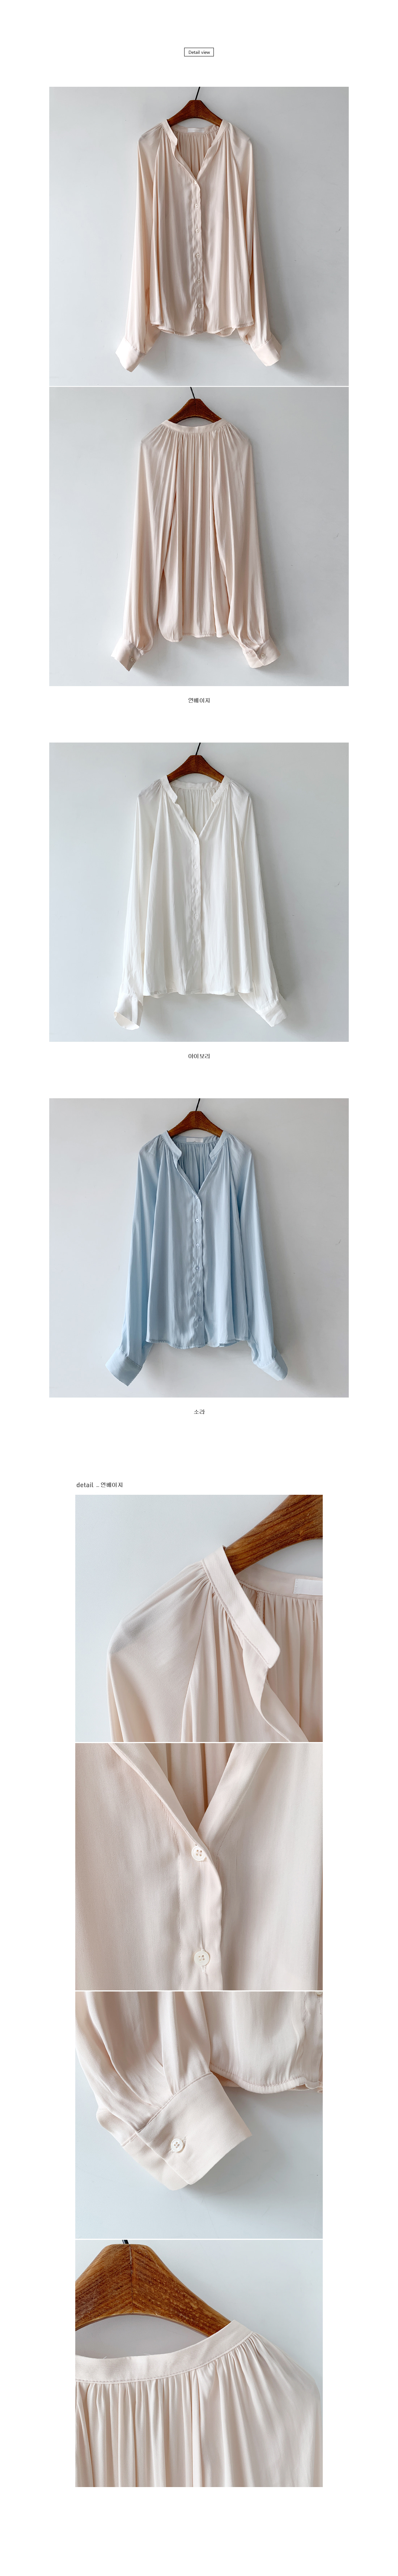 Make-up shirting blouse